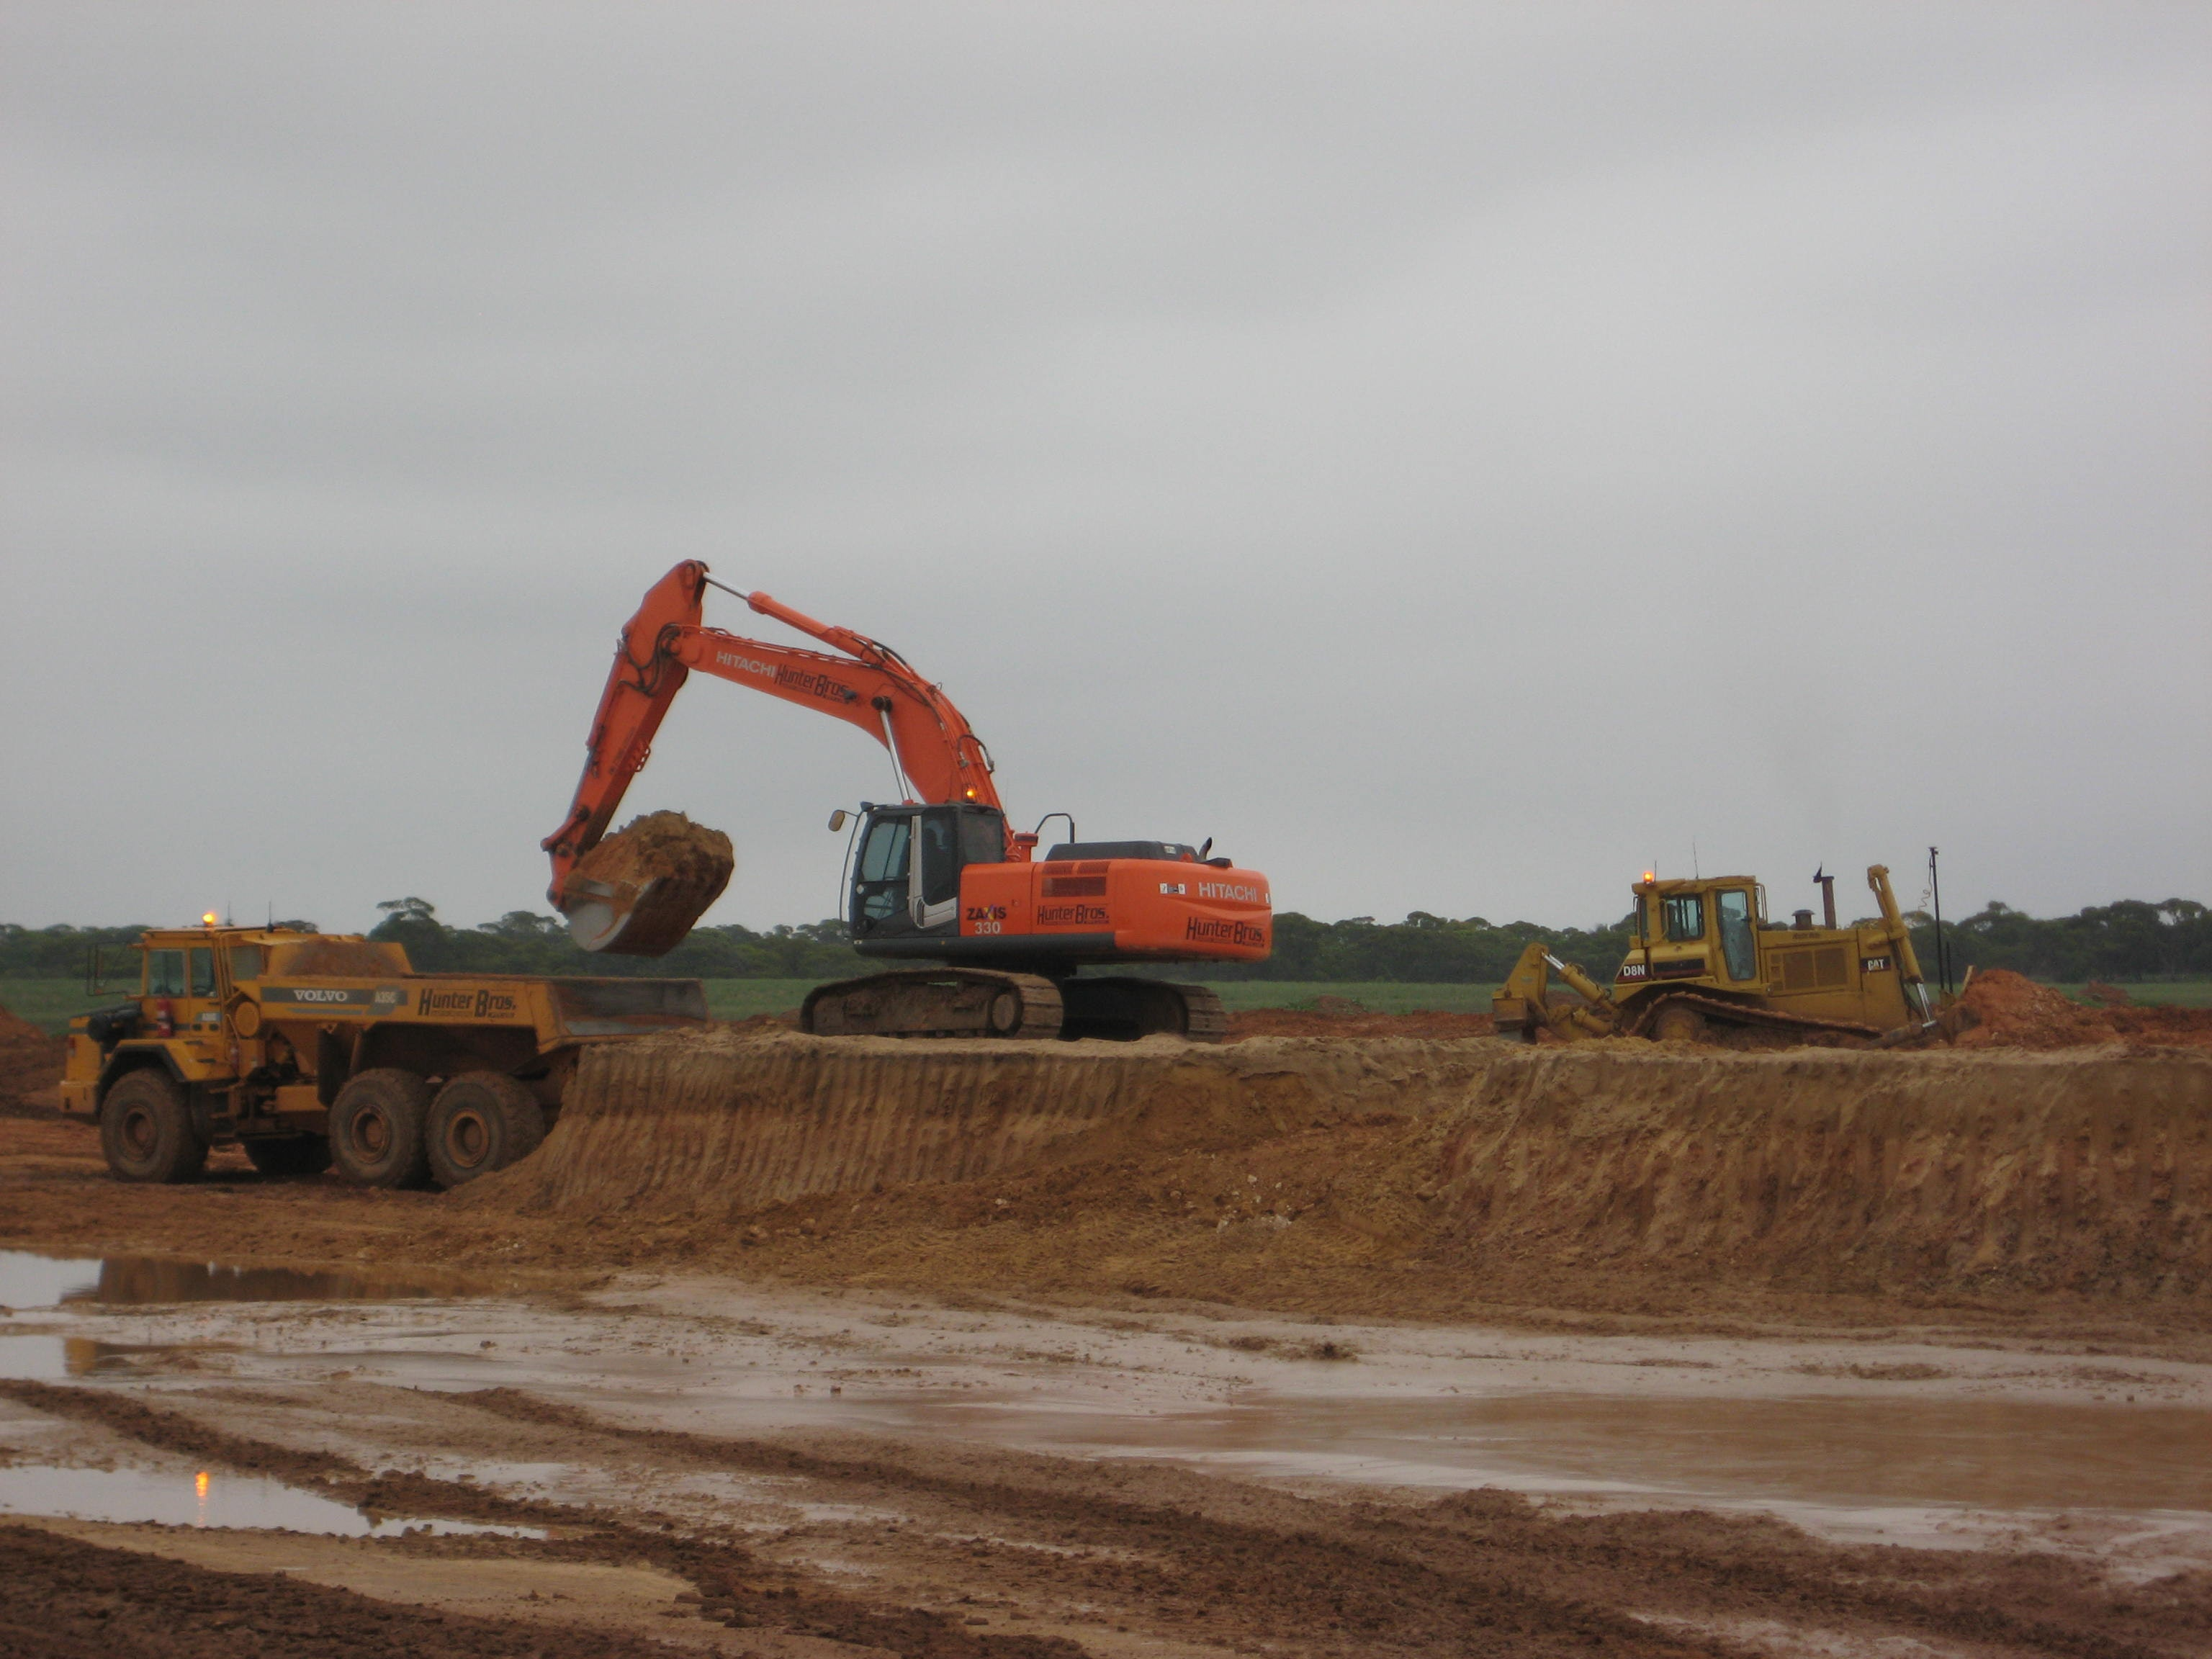 30t - 39t Excavator for hire - Hunter Bros Earth Movers Pty Ltd